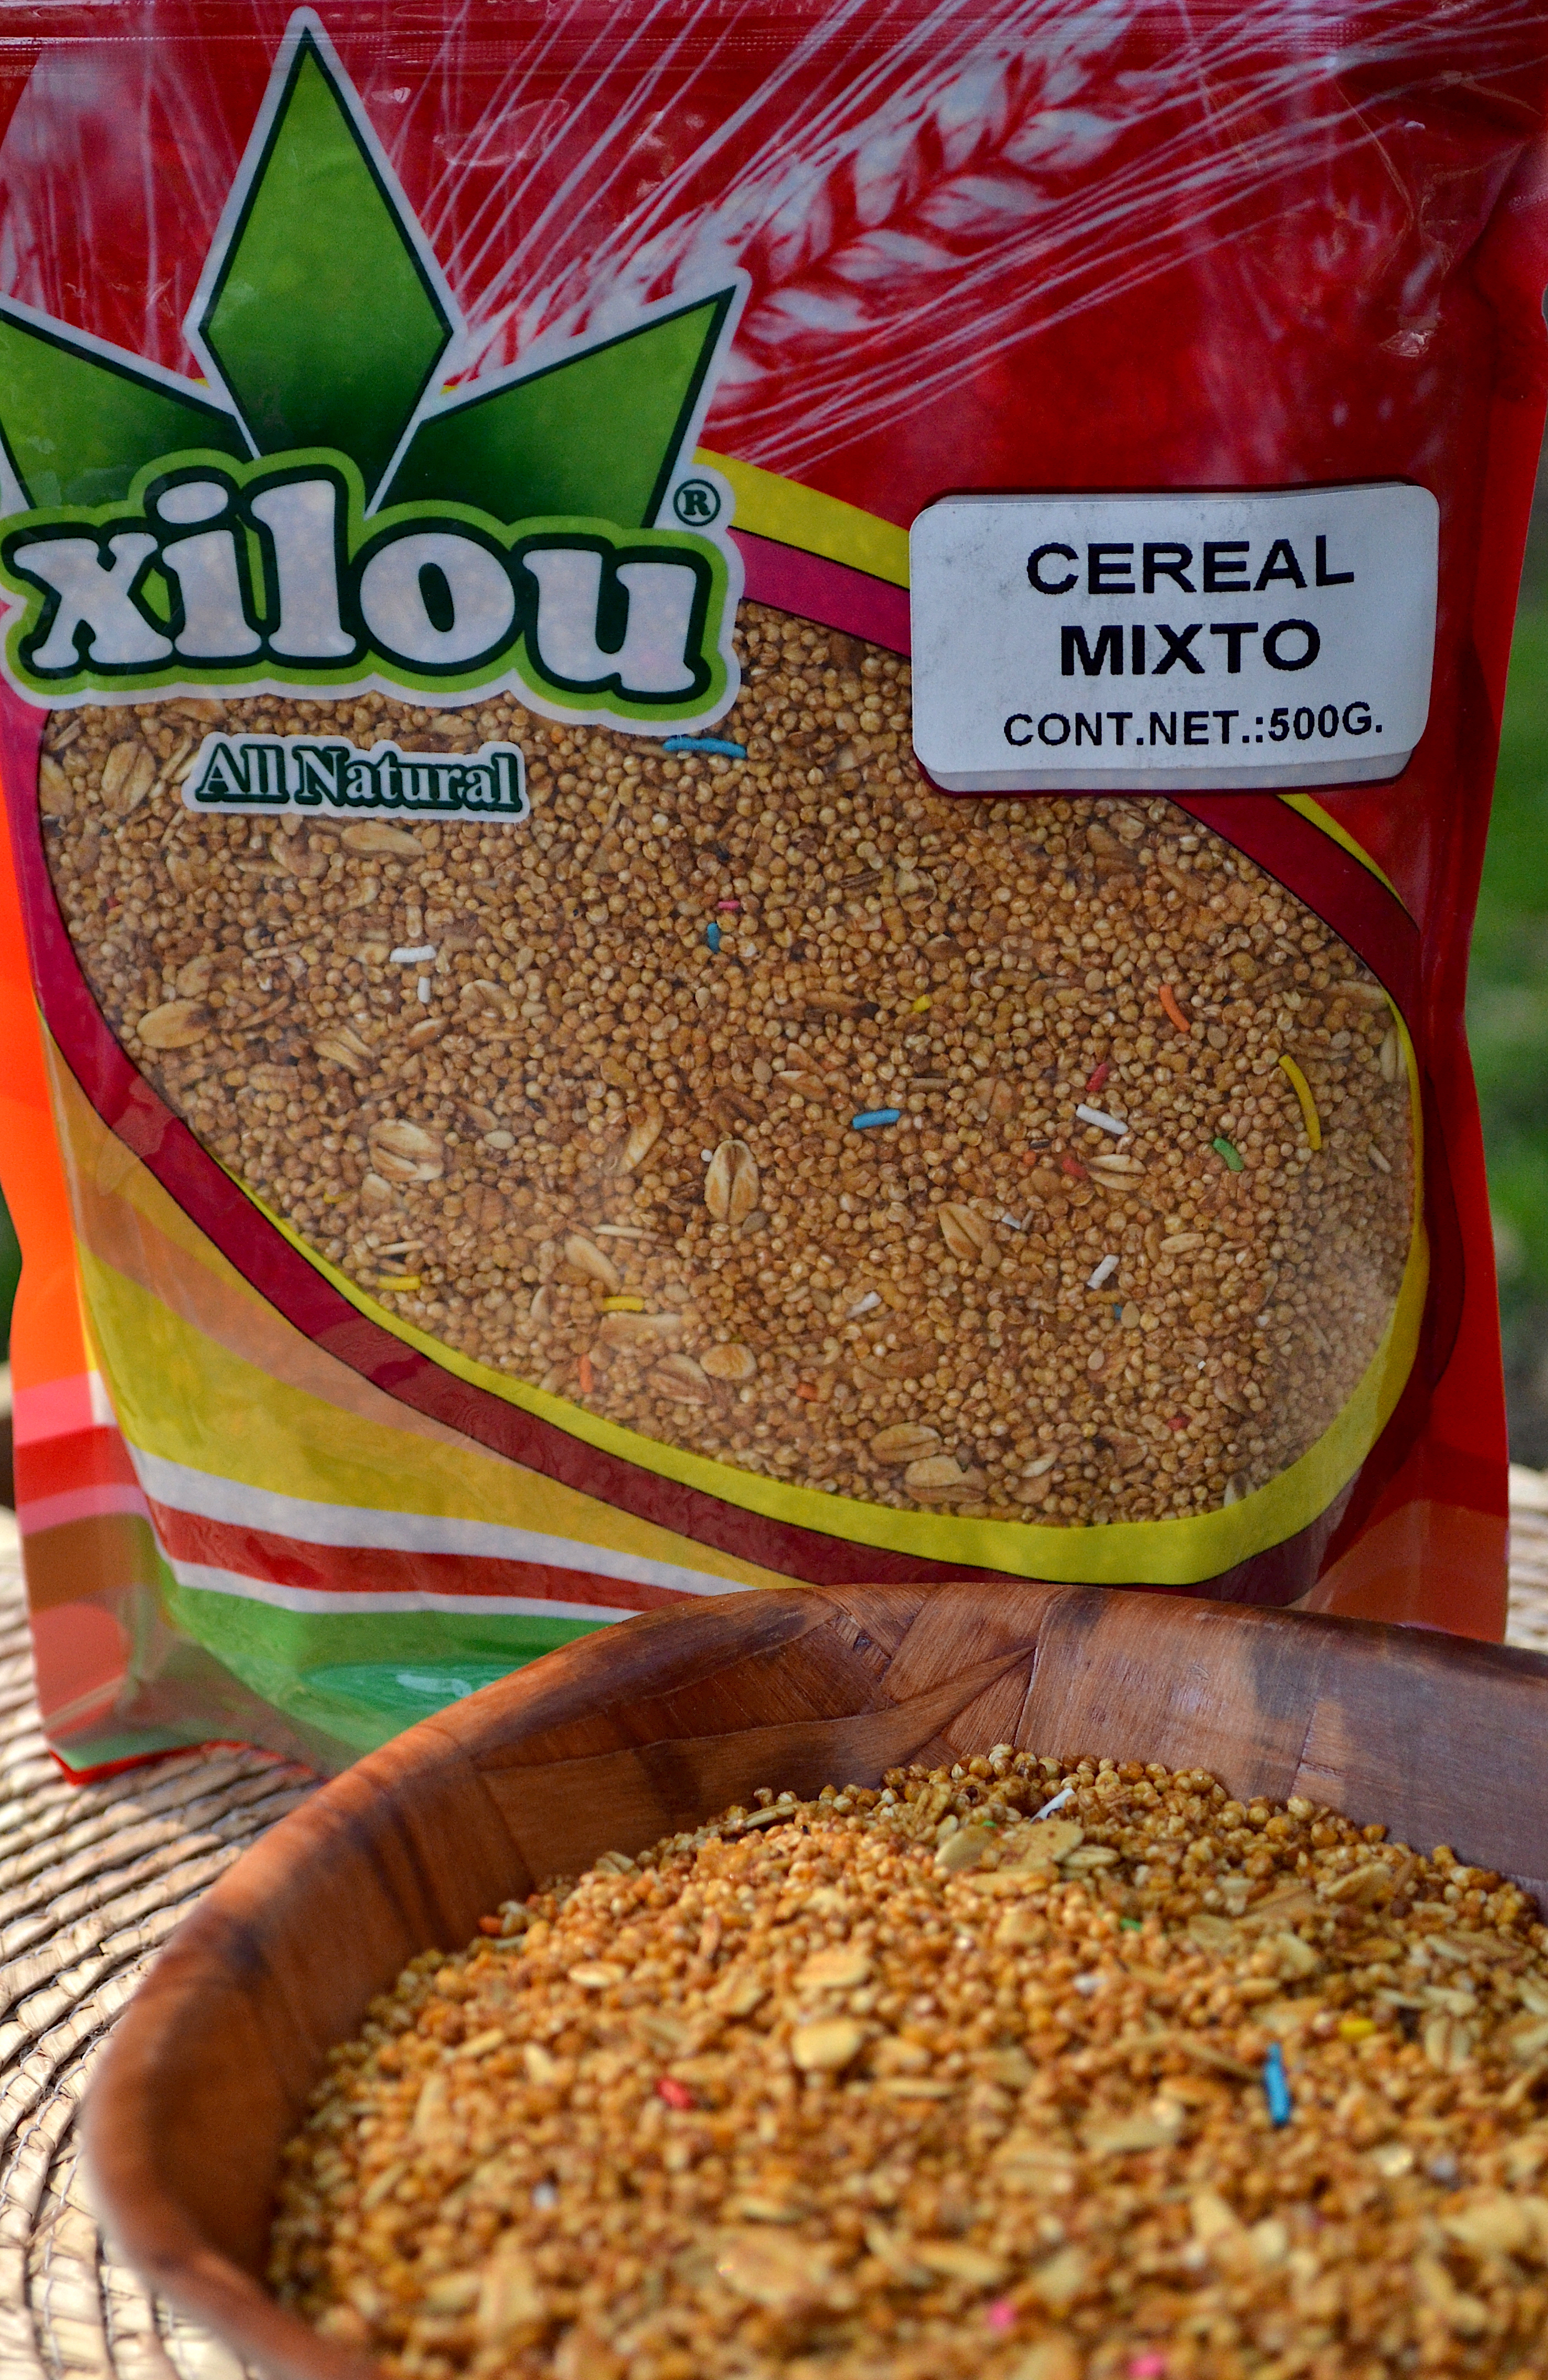 Cereal Mixto 500g.